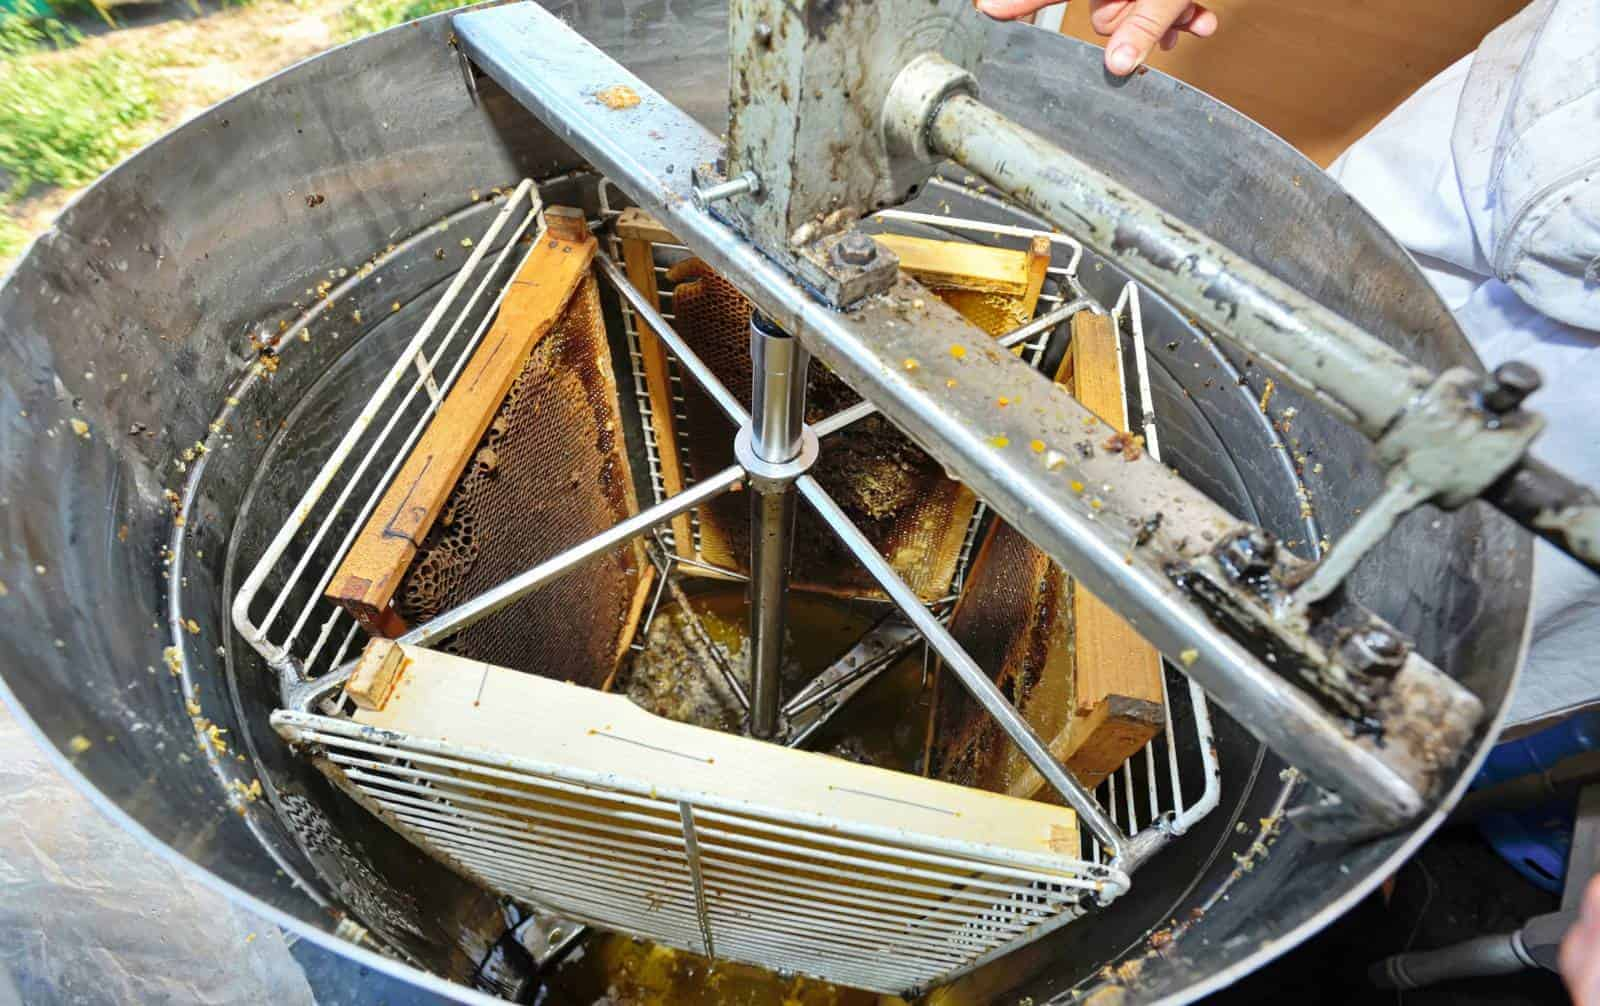 cleaning honey extracting equipment.